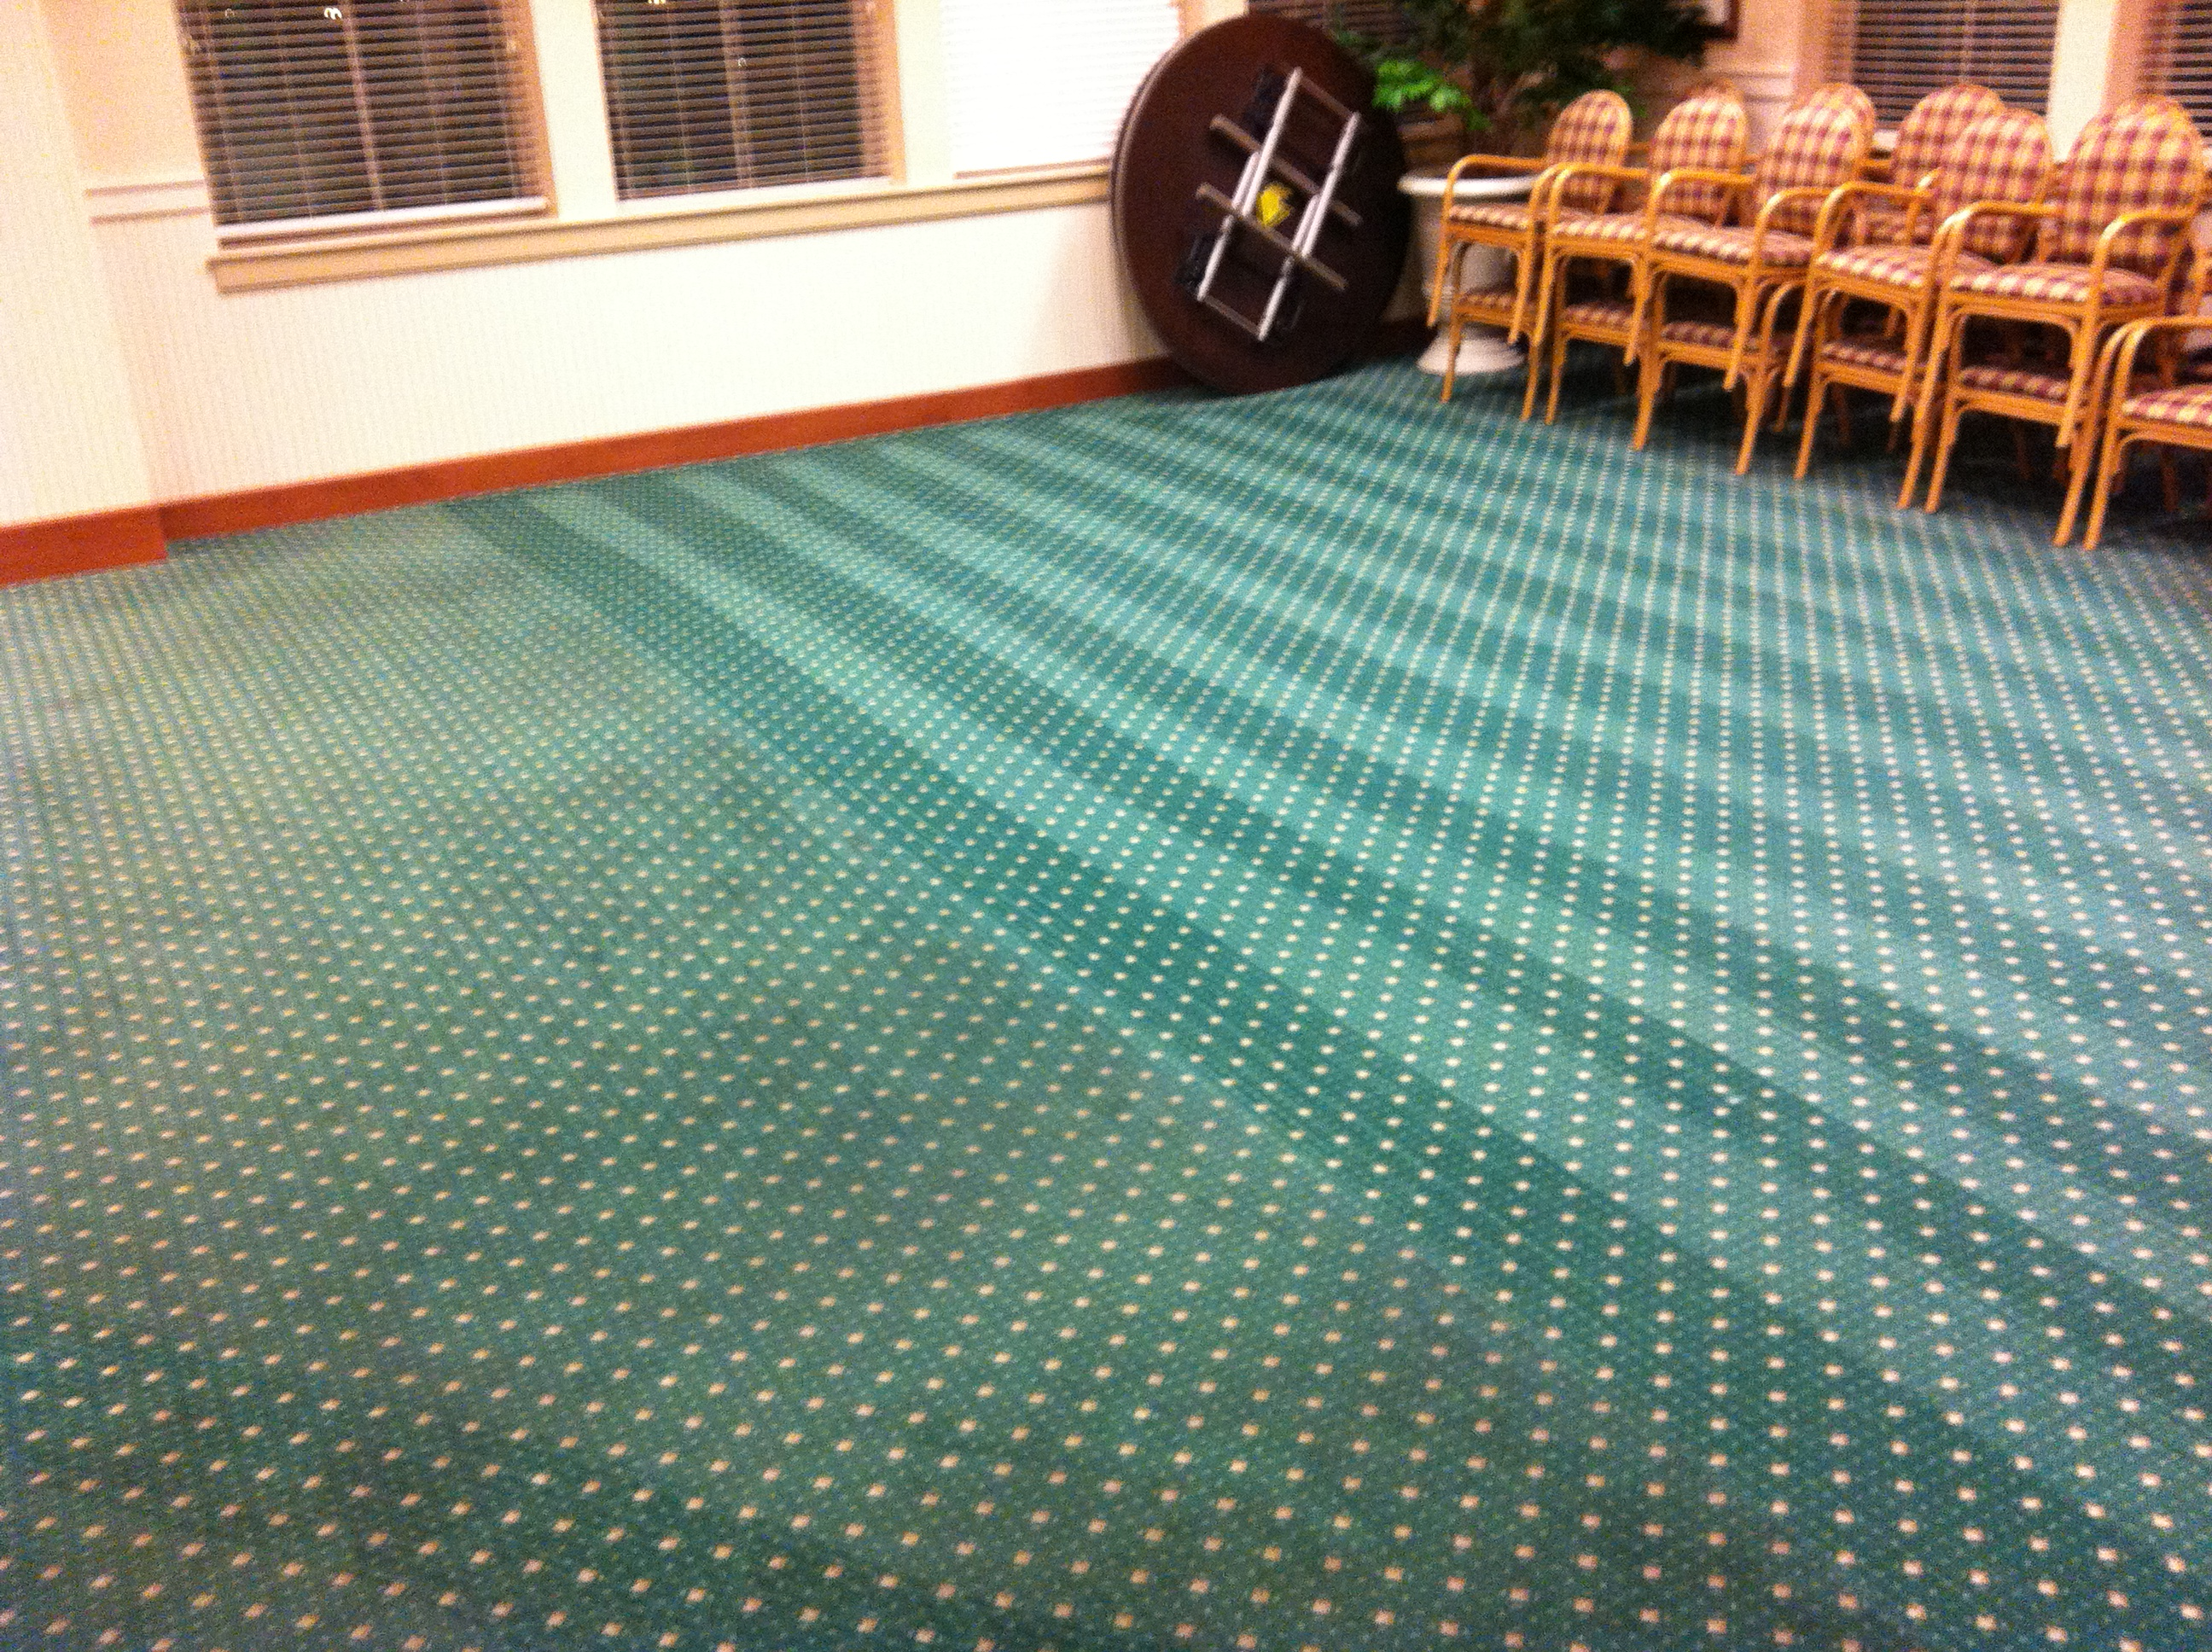 Carpet Cleaning Carpet Cleaners Dublin Chem Dry Executive